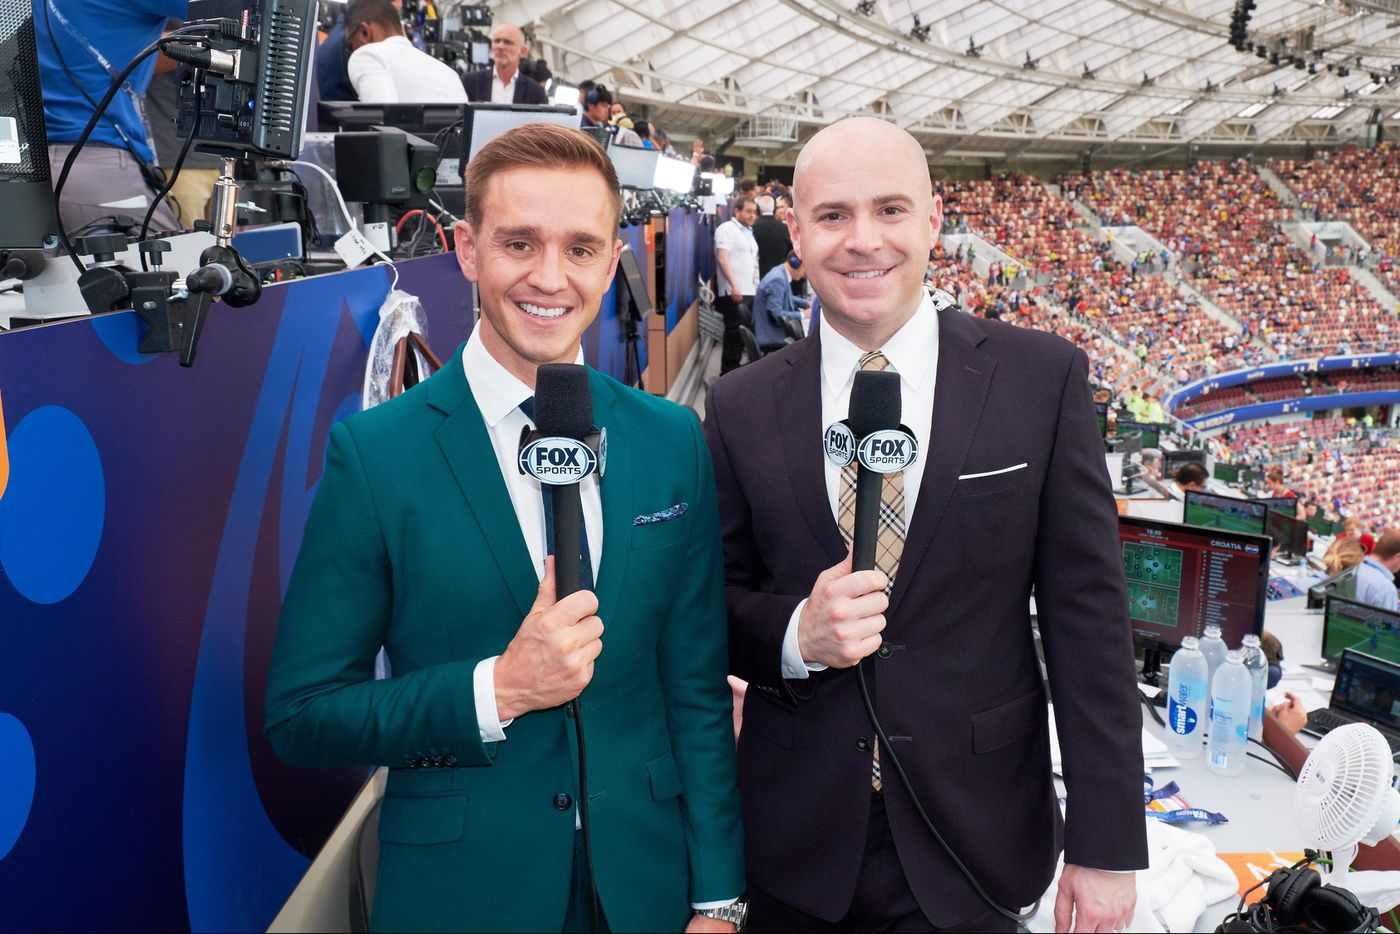 Fox Sports' Stuart Holden: Union fans right 'to expect results' from team